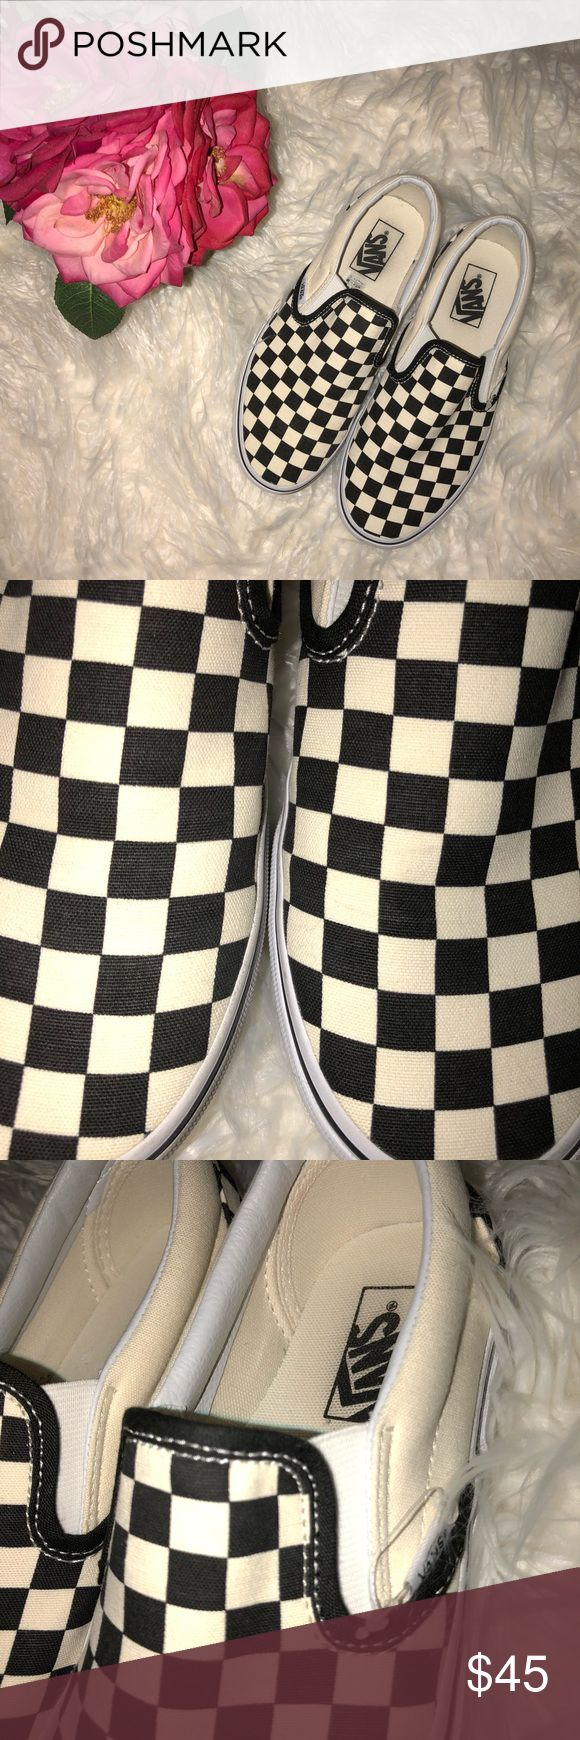 Vans Checkered Slip-On Shoe WORN ONCE! The Classic Slip-On has a low profile, slip-on canvas upper with all-over checker print, elastic side accents, Vans flag label and Vans original Waffle Outsole. Unisex fit - Women 8/ Men 6.5 Vans Shoes